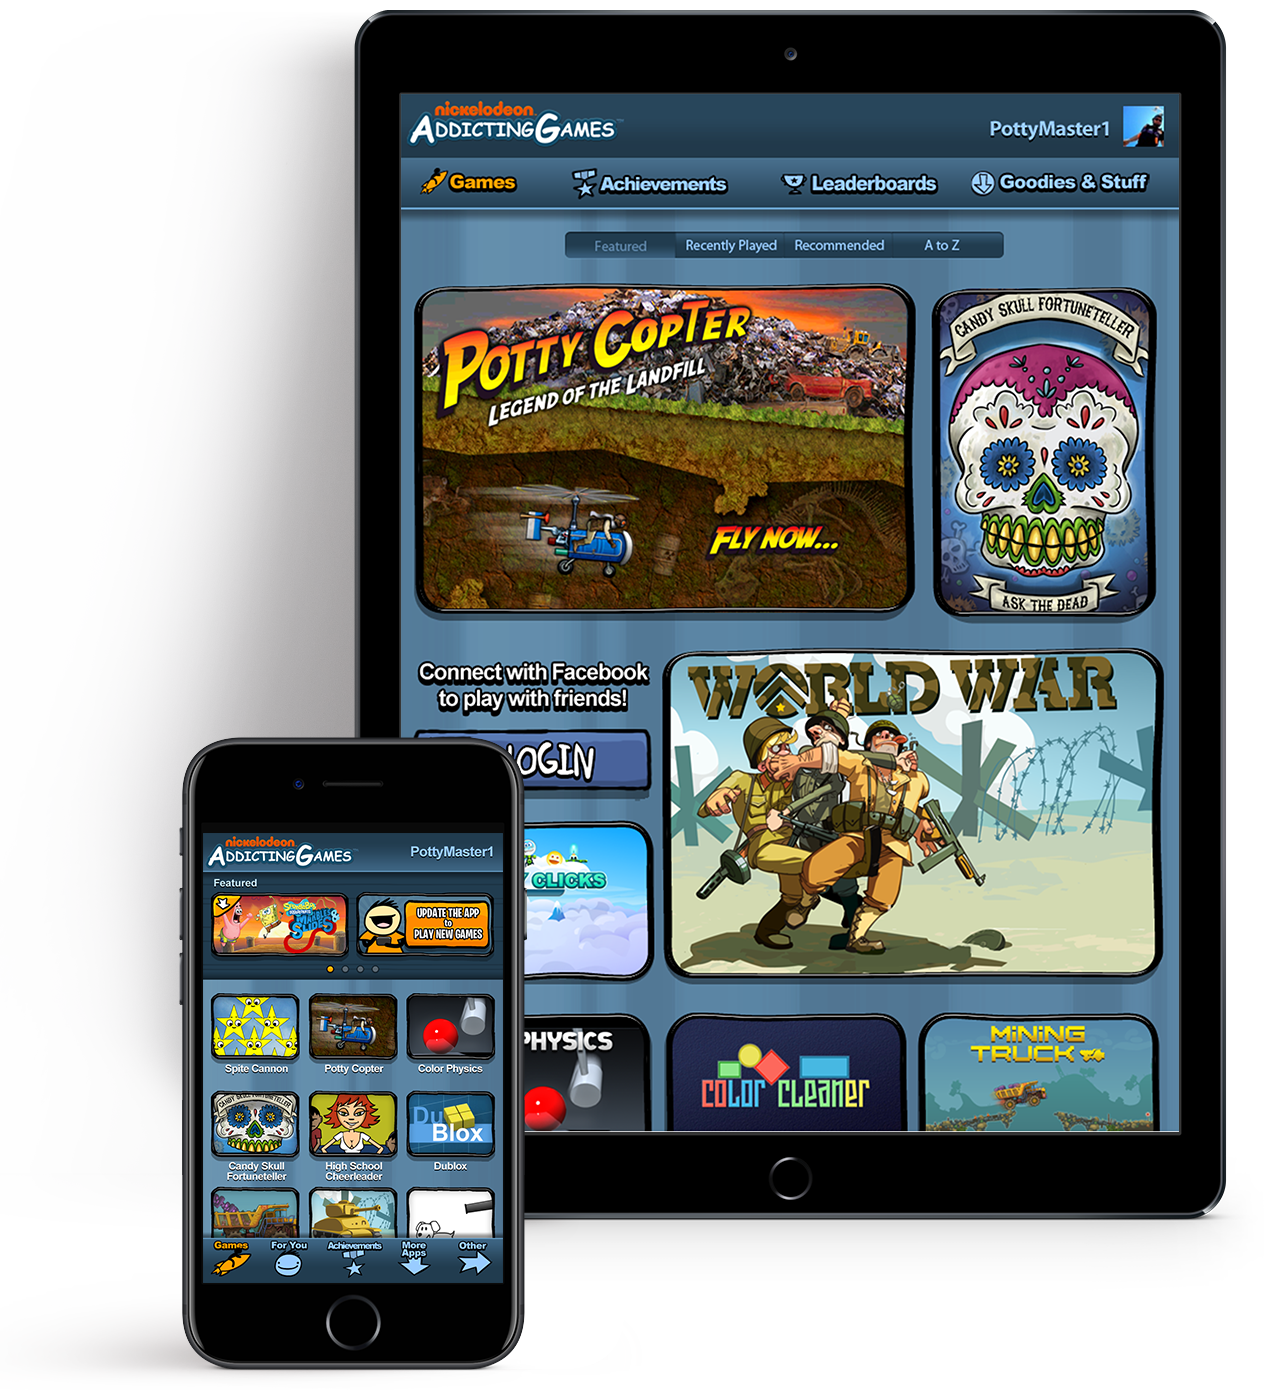 AddictingGames tablet and mobile app